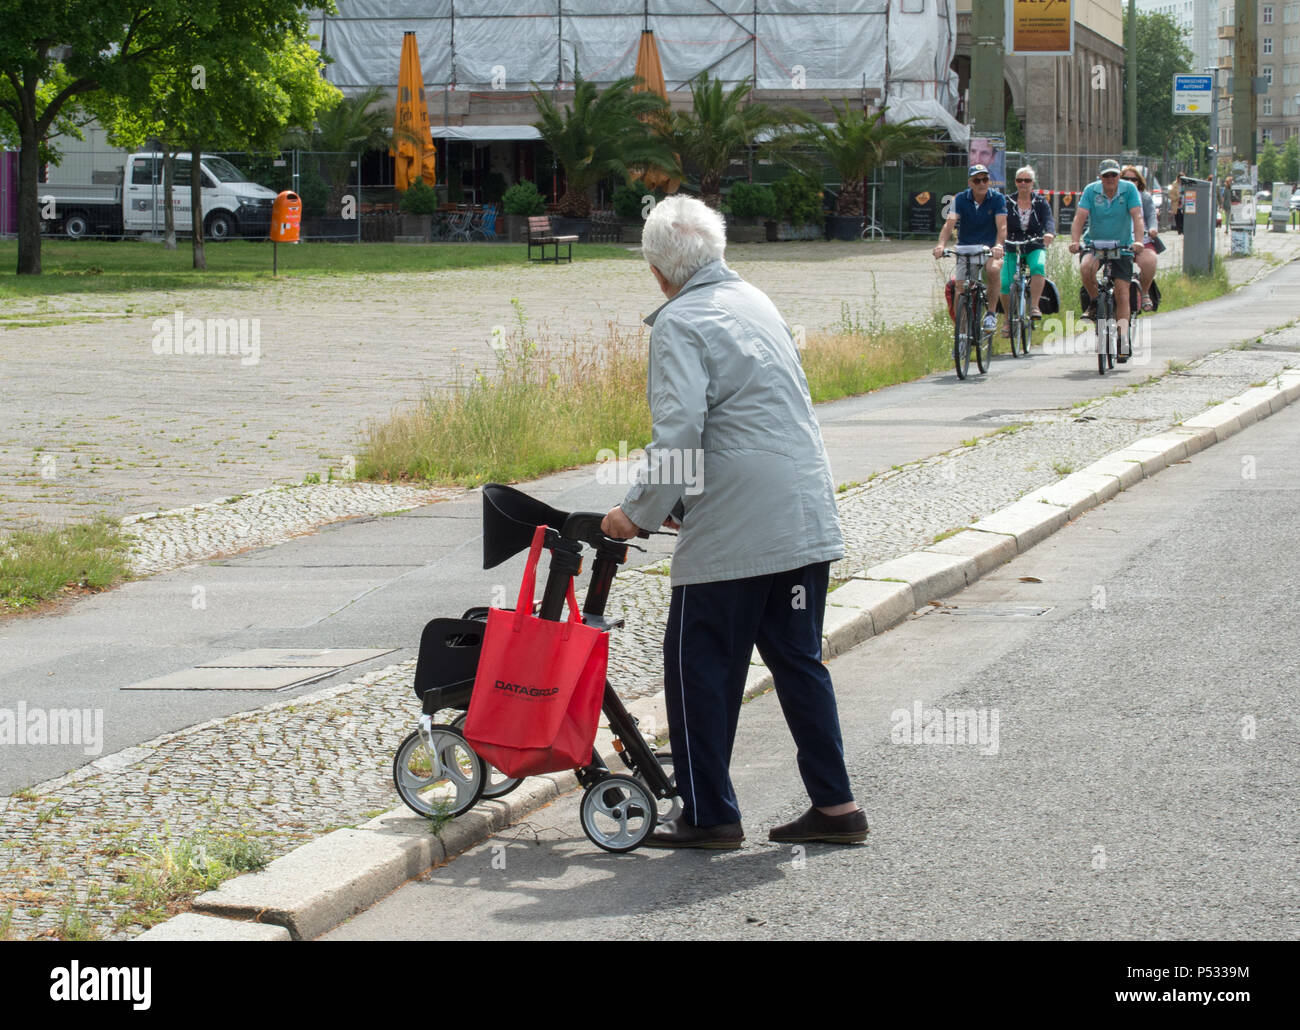 A retiree crossing a road and a bike path - Stock Image